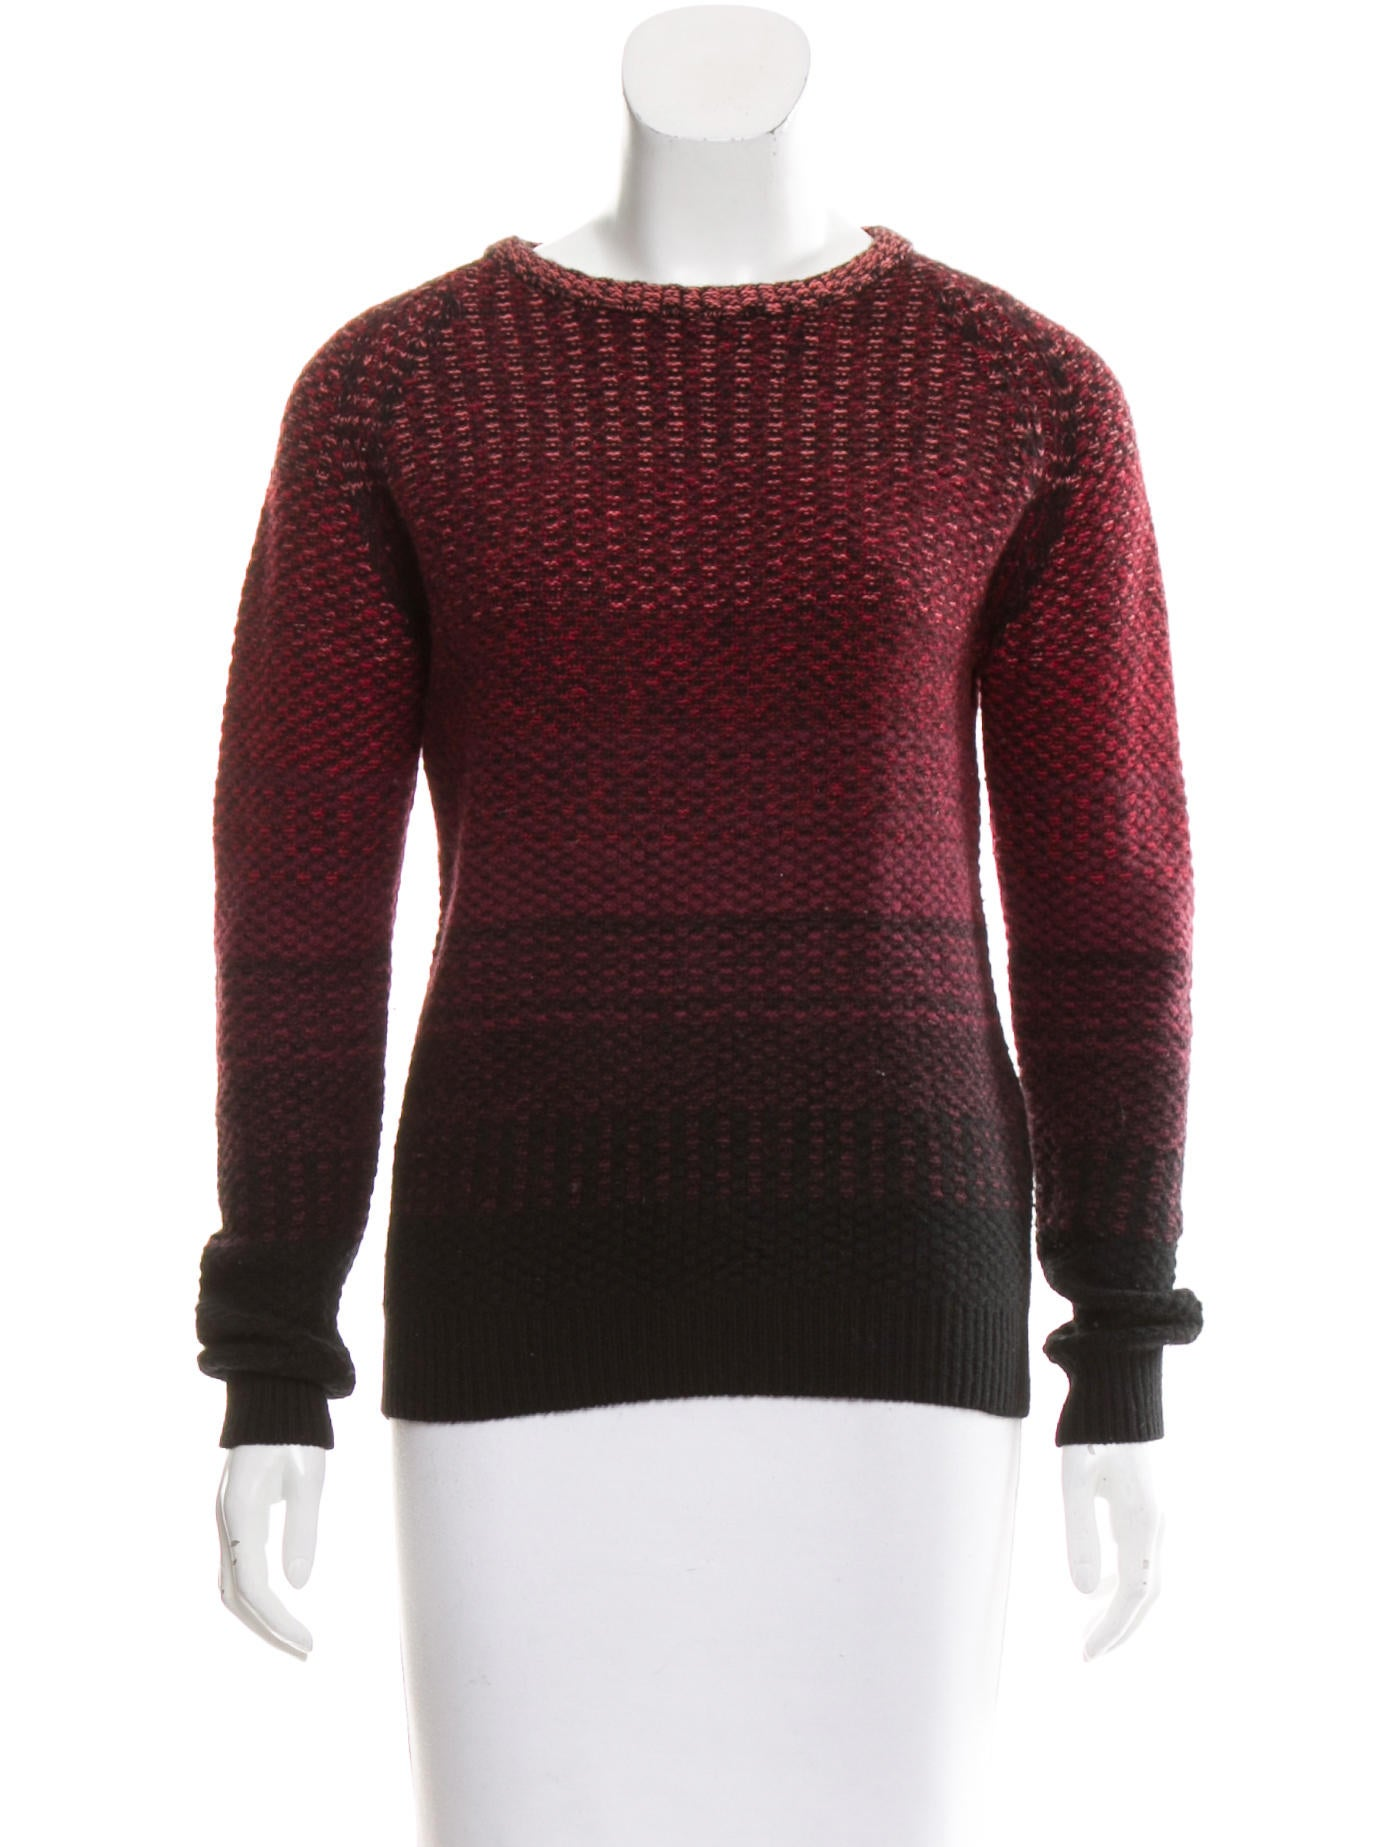 Shop a great selection of Cashmere Sweaters for Women at Nordstrom Rack. Find designer Cashmere Sweaters for Women up to 70% off and get free shipping on orders over $